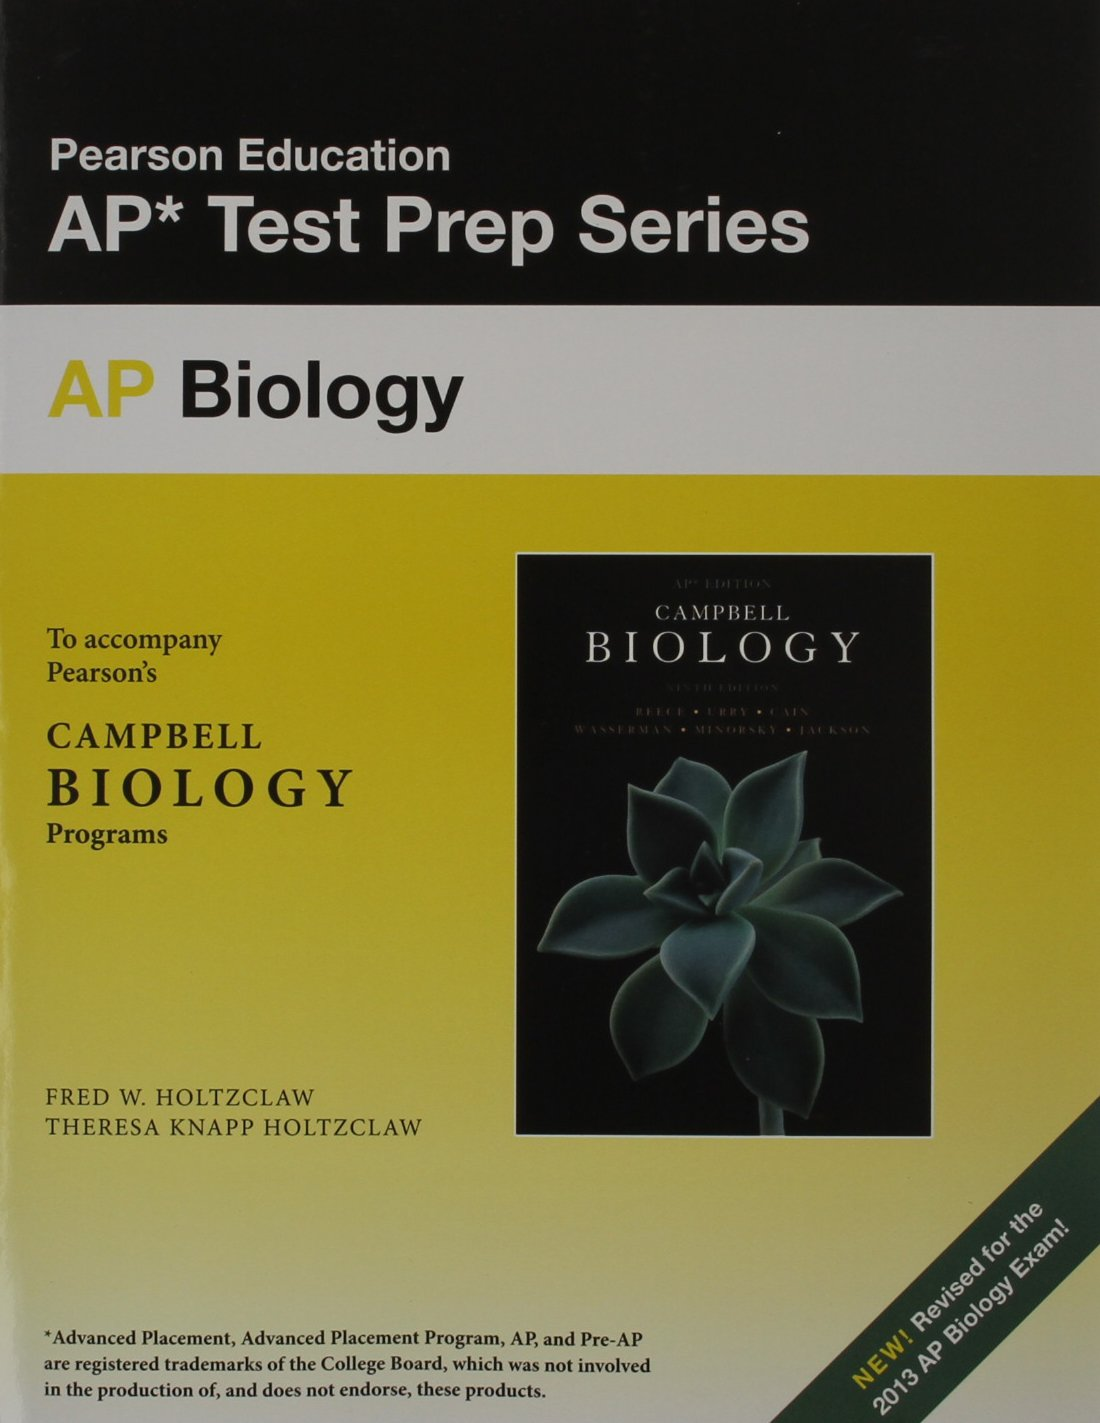 AP Biology: To Accompany Pearson's Campbell Biology Programs: Jane B. Reece,  Fred W. Holtzclaw: 9780321856630: Books - Amazon.ca